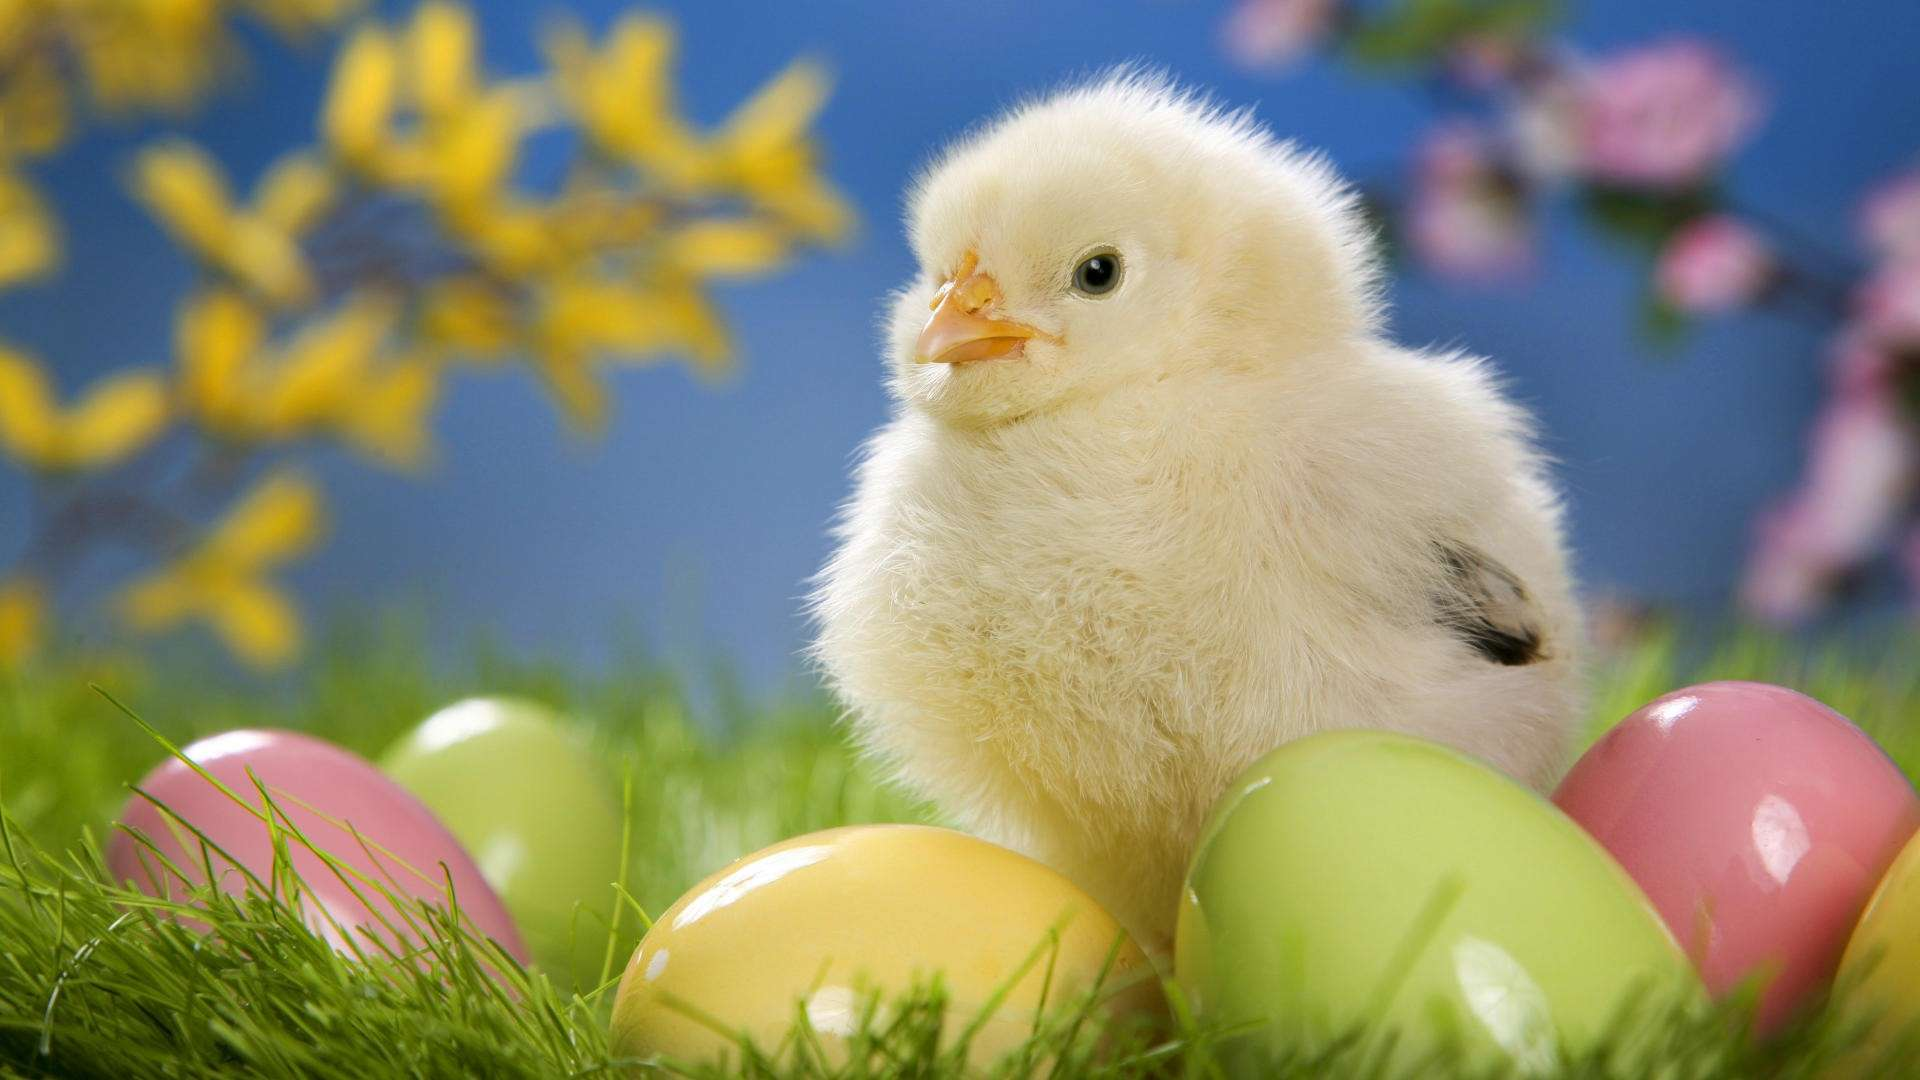 Cute Easter Chick with Eggs HD Wallpaper » FullHDWpp - Full HD ...